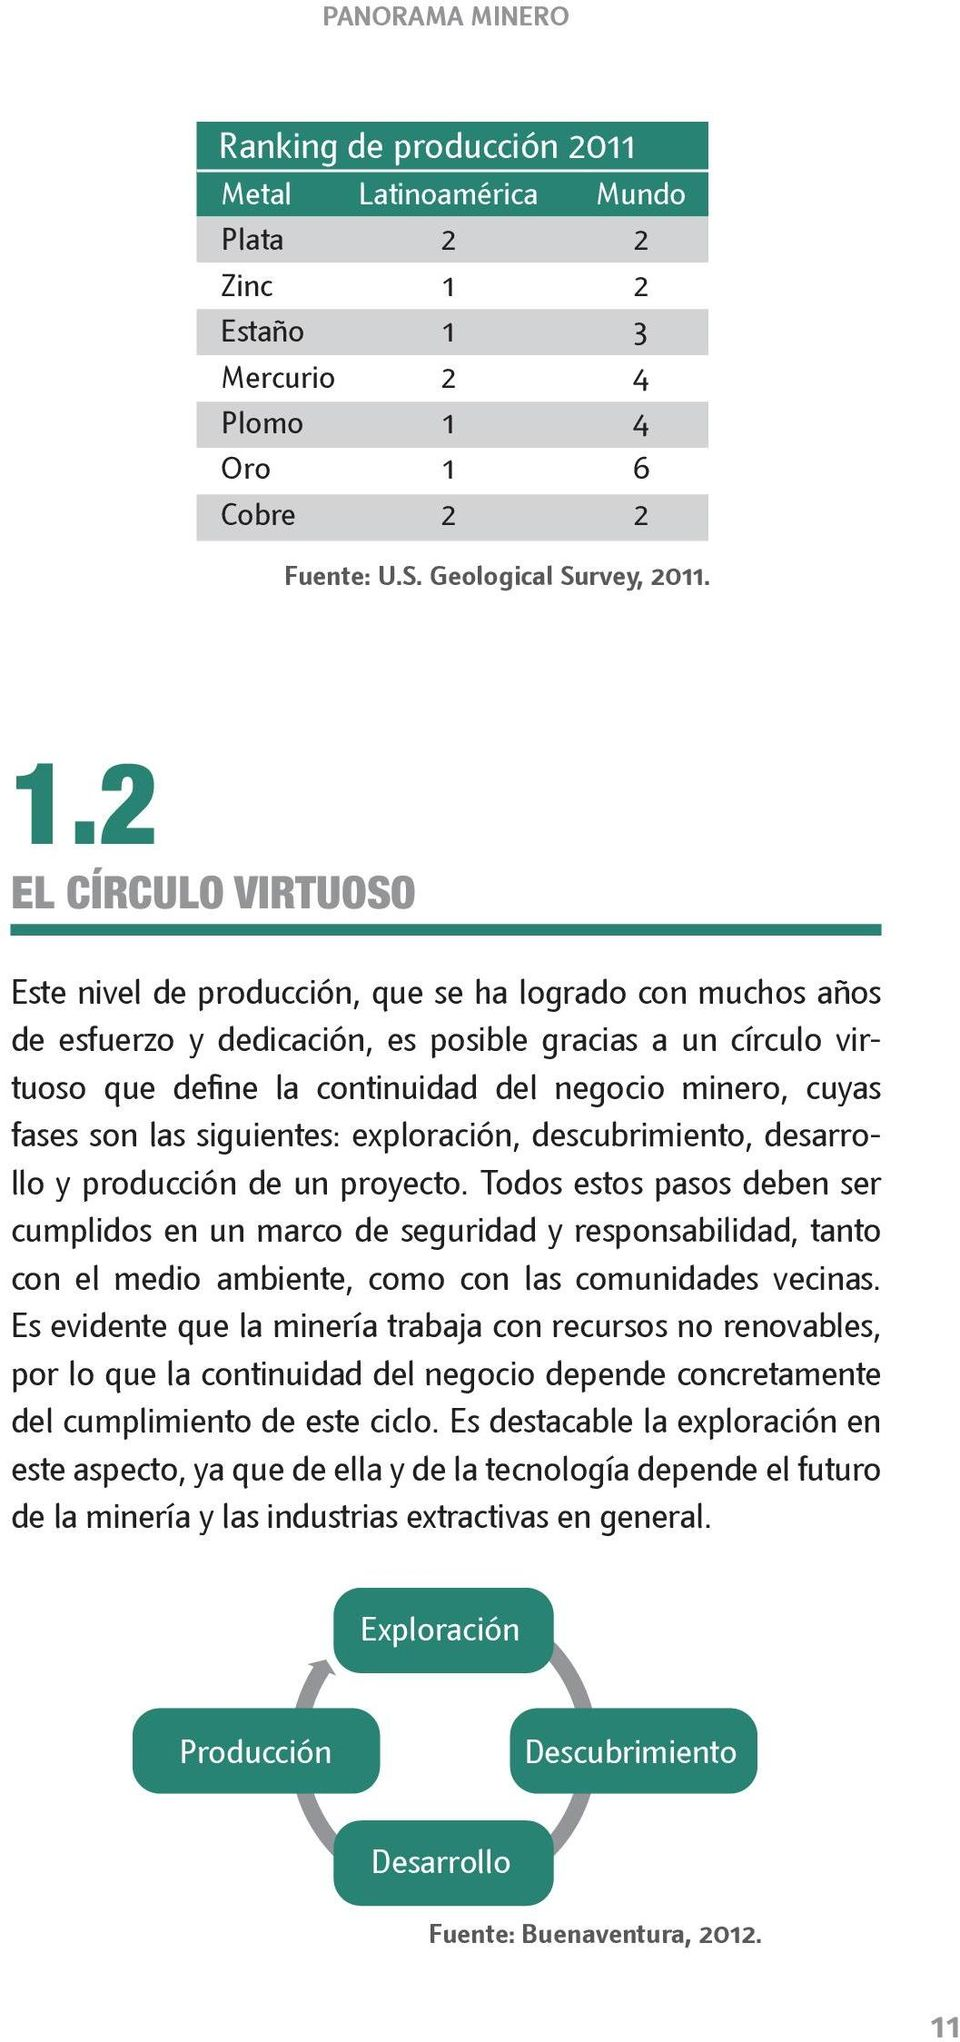 1 2 Mundo 2 2 3 4 4 6 2 Fuente: U.S. Geological Survey, 2011. 1.